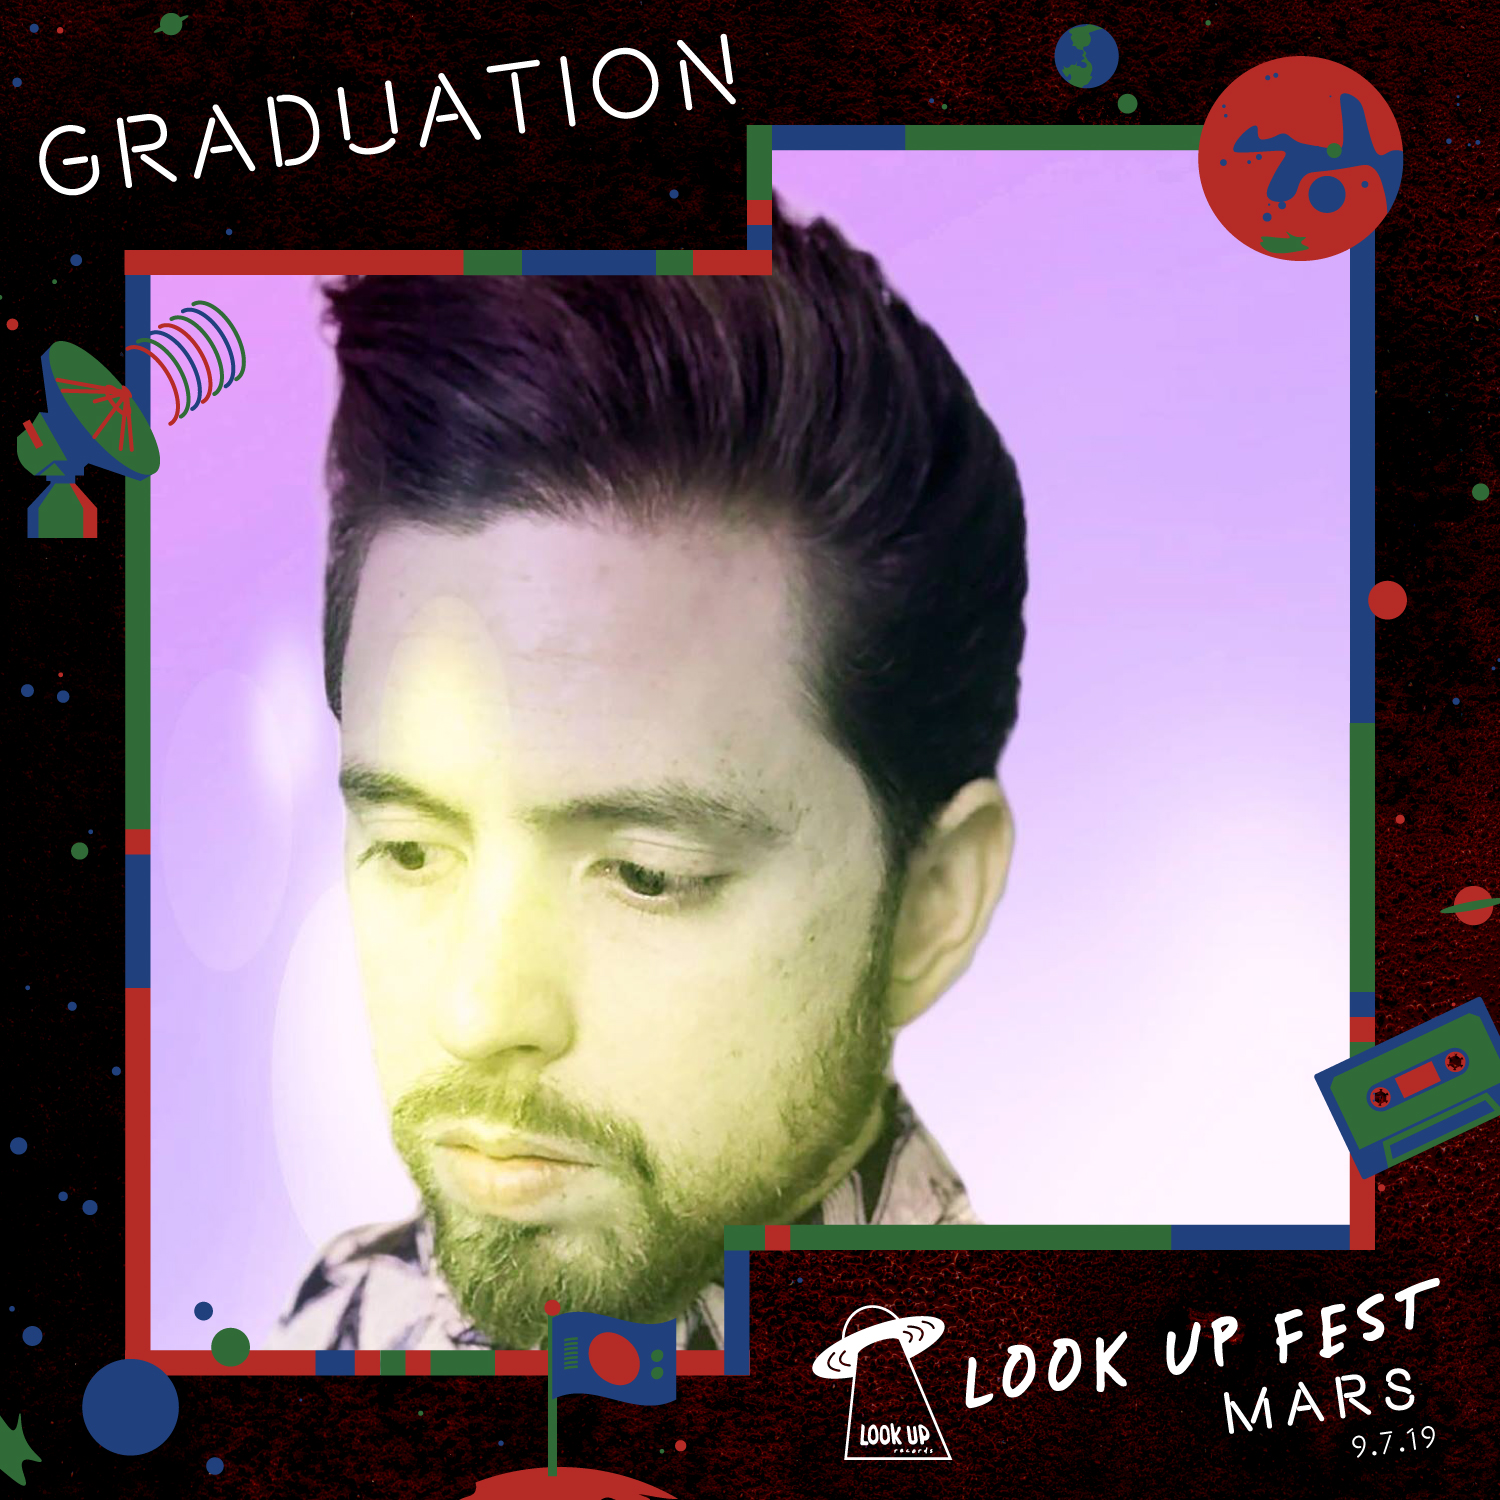 """GRADUATION - From touring in bands that idolized Refused and At the Drive In, to mimicking the sounds of the Shoegaze noise aficionados of the 90's, Adam Piddington has always embodied the sounds of his idols. His band Daysleeper indulged in loud fuzzed out guitars not unlike Sonic Youth (album was mixed by Alex Newport who also produced At the Drive In's In/Casino/Out"""") while Lanterns played their best versions of rock'n roll epics similar to the Smashing Pumpkins. But not until recently, after years in his home studio, has Adam stumbled upon what is Graduation, an amalgamation of all his influences. With inspiration from Dilla, to My Bloody Valentine, Graduation was born. A project that bodes lush synths, dreamy vocals, and melodies reminiscent of 60's psych pioneers The Beach Boys."""